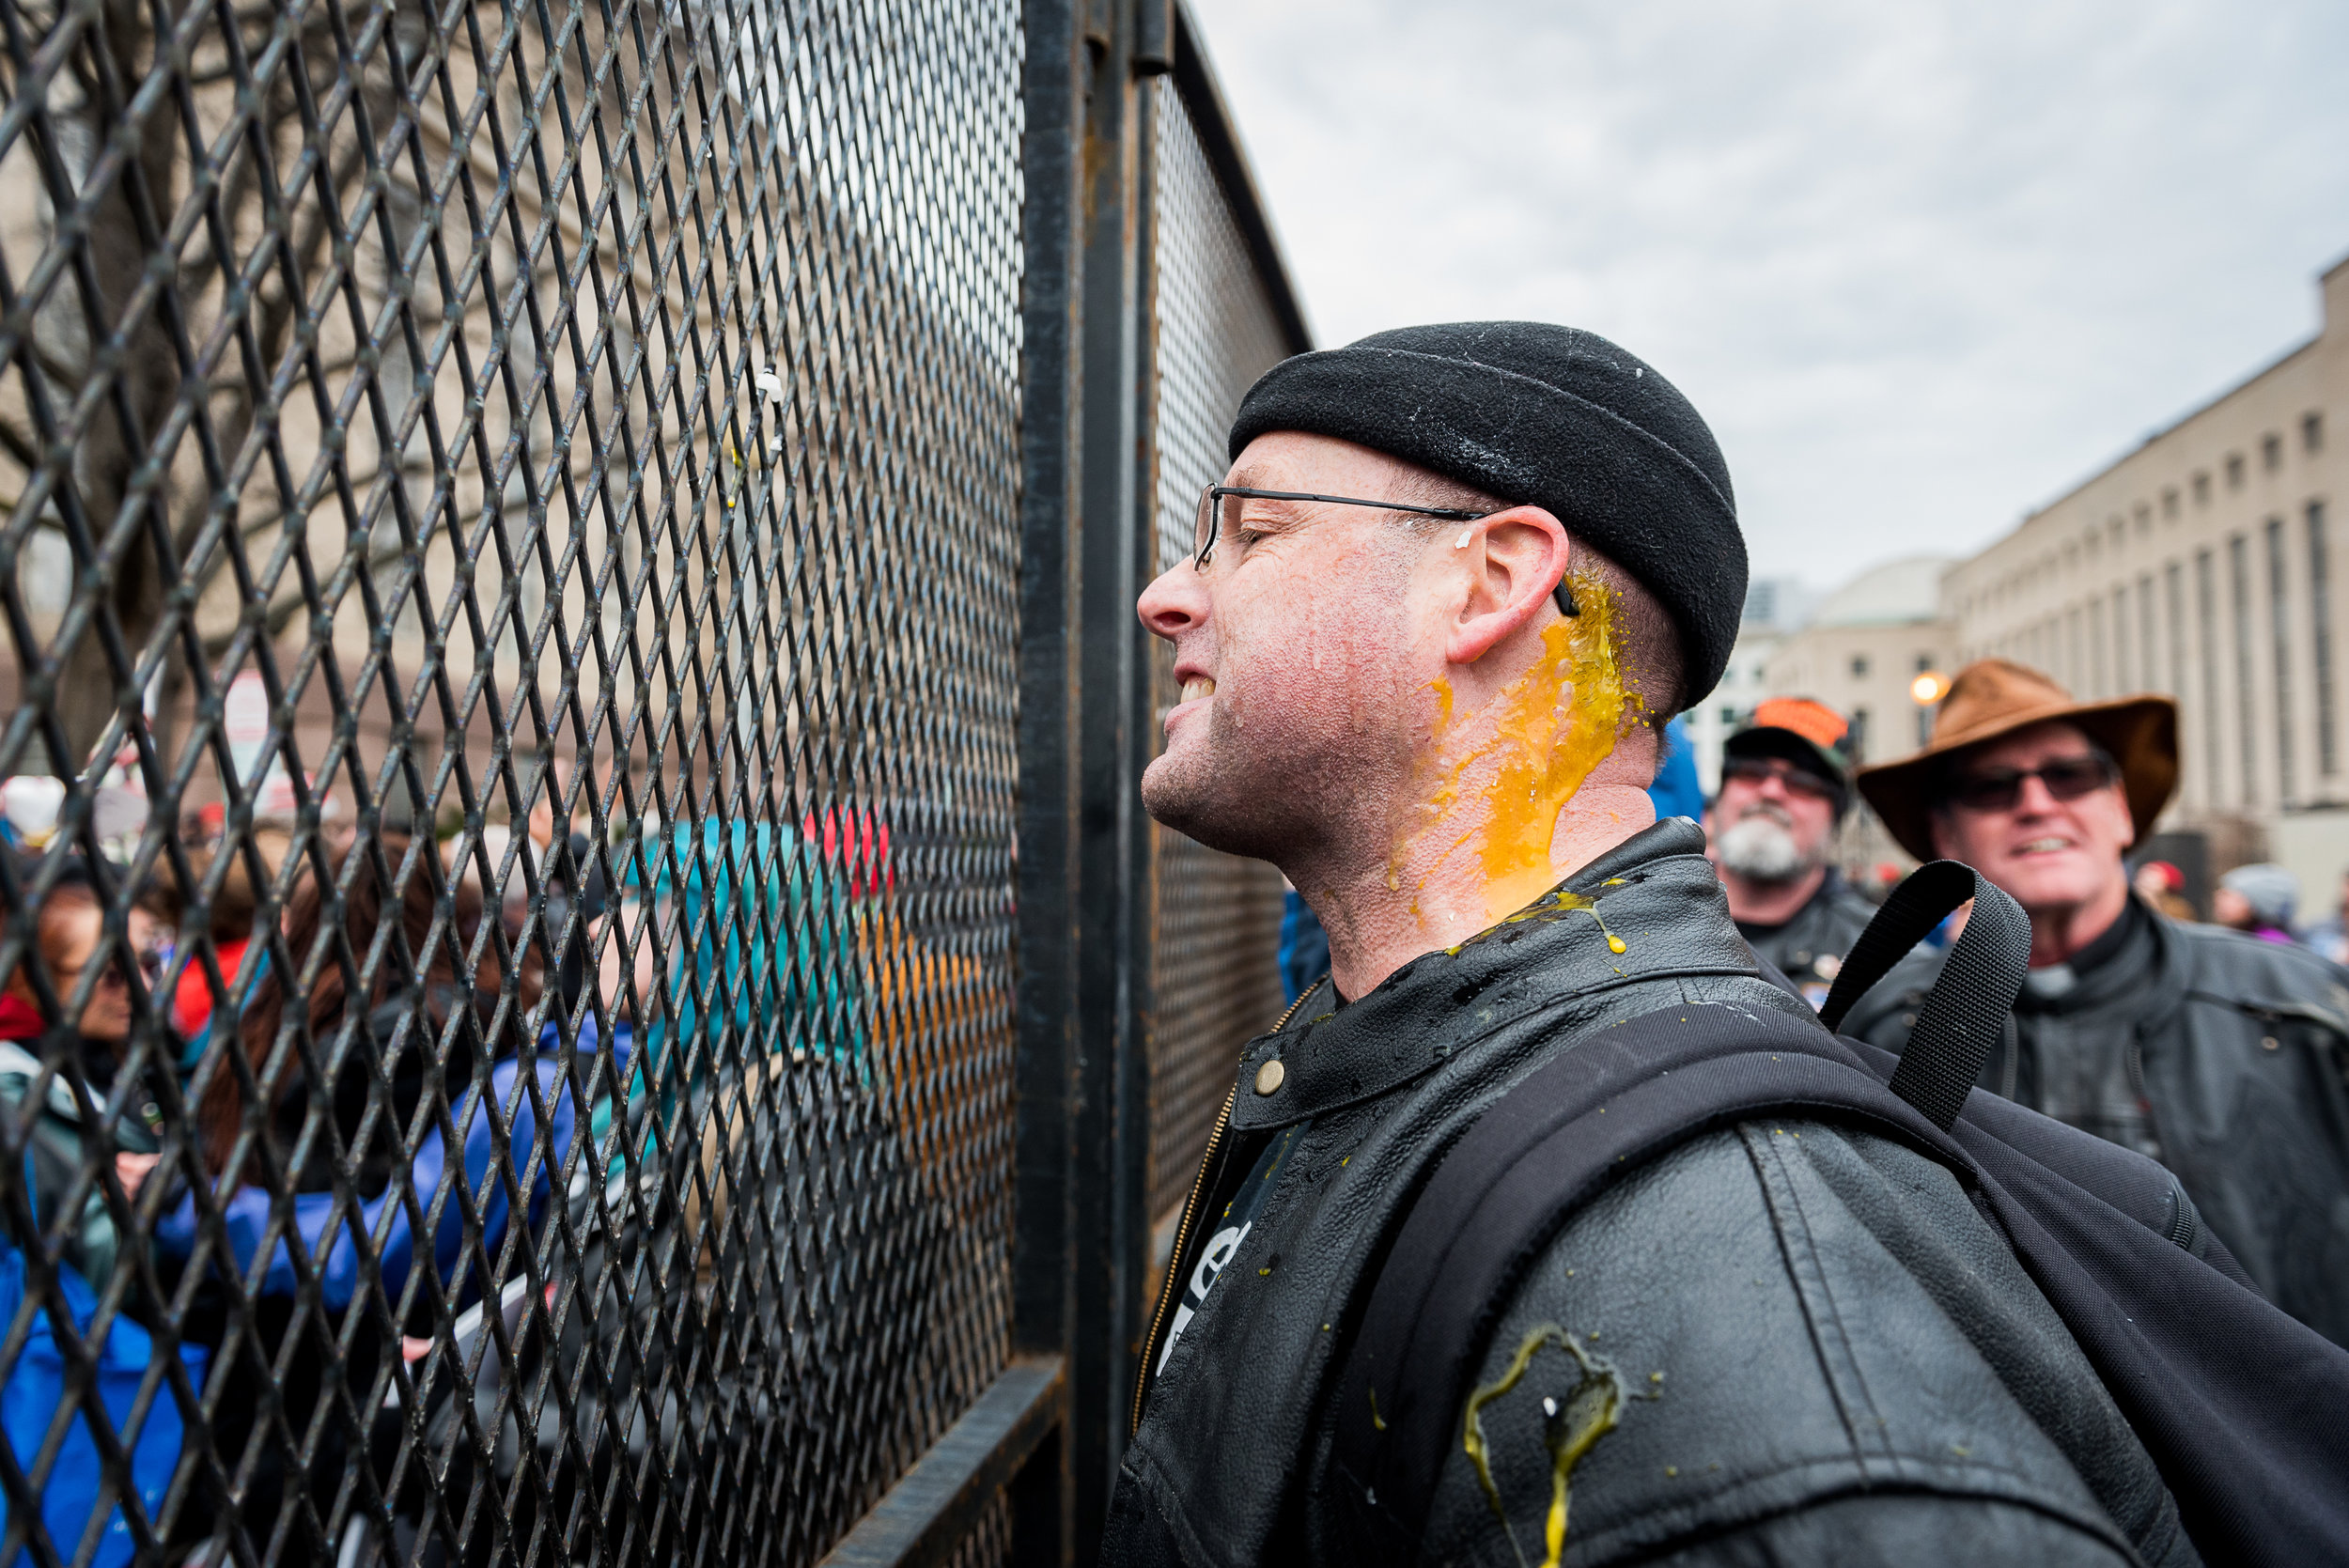 Washignton D.C. resident Chris Z., a member of Bikers For Trump, talks back at protesters through a security checkpoint barricade after being hit in the neck with an egg thrown by a protester, Friday, January 20, 2017.